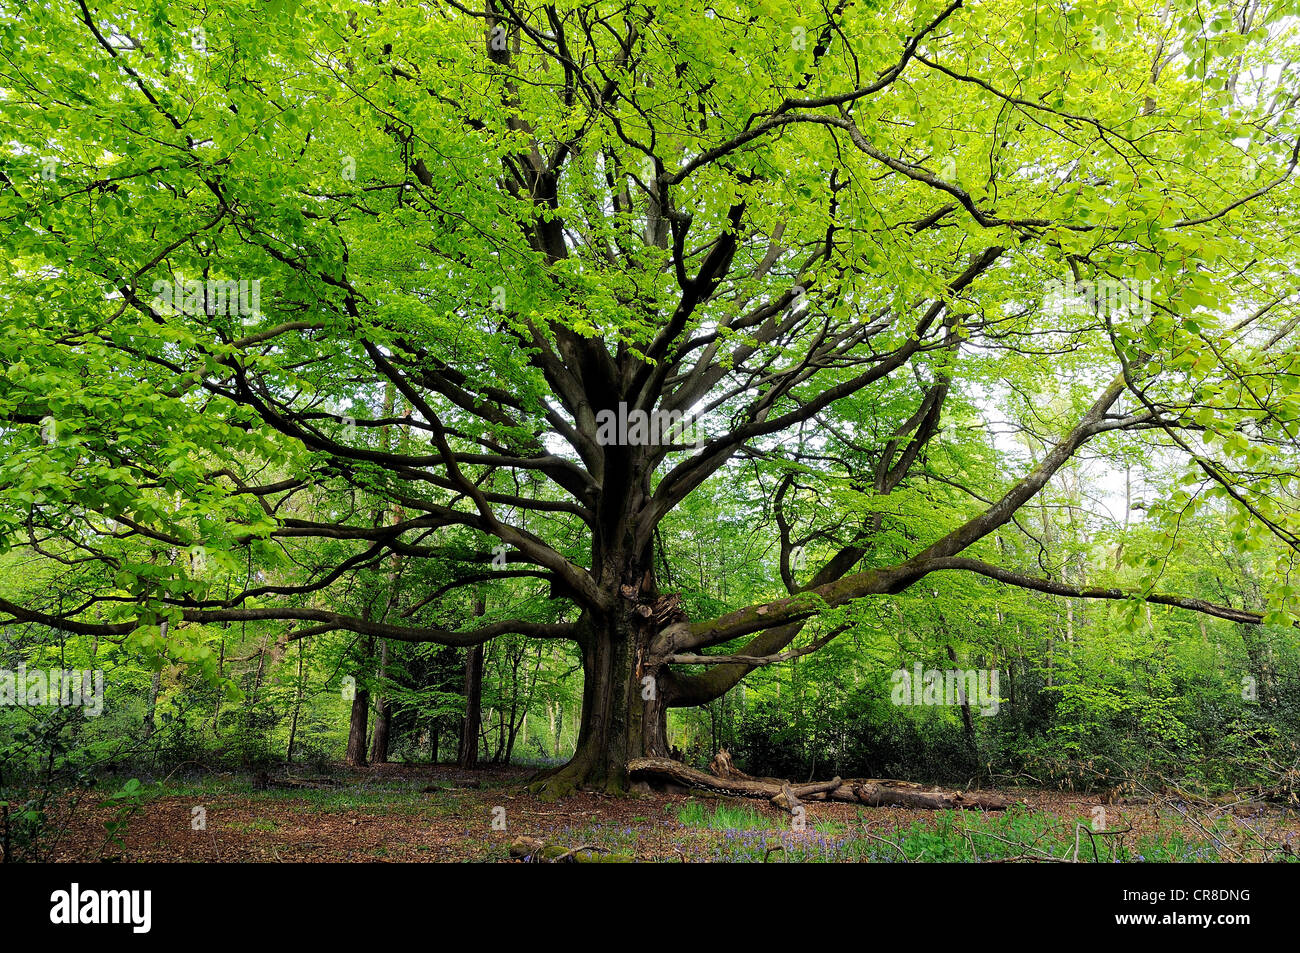 Beech tree in spring leaf in The Surrey Hills, near Dorking England UK - Stock Image